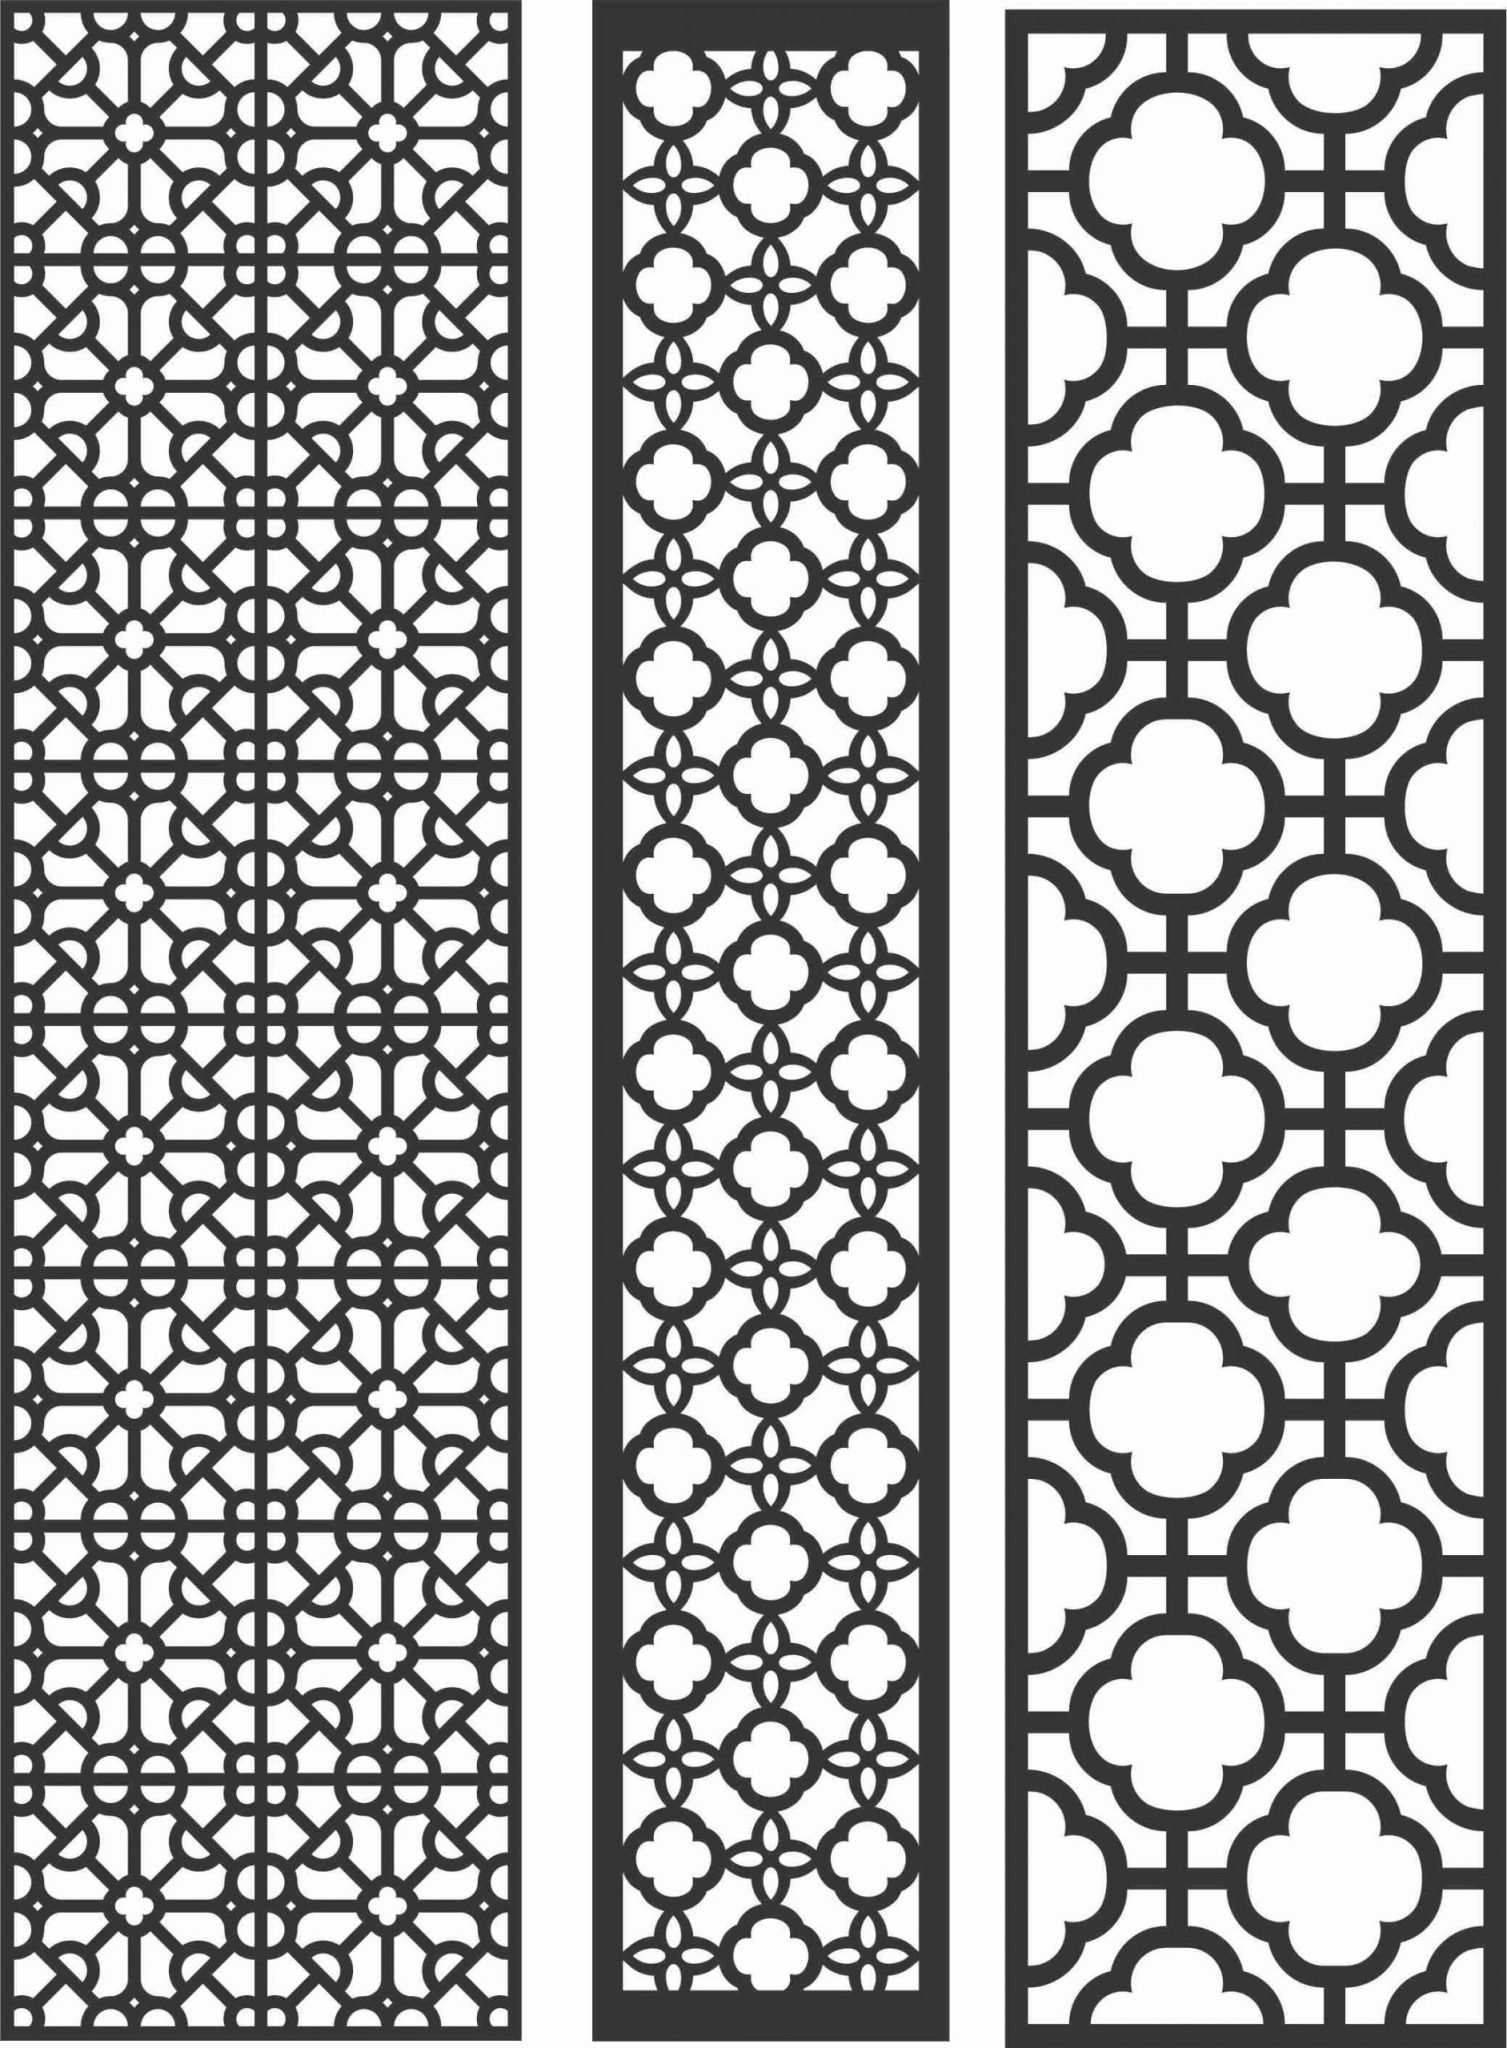 Decorative Screen Patterns For Laser Cutting 85 Free DXF File